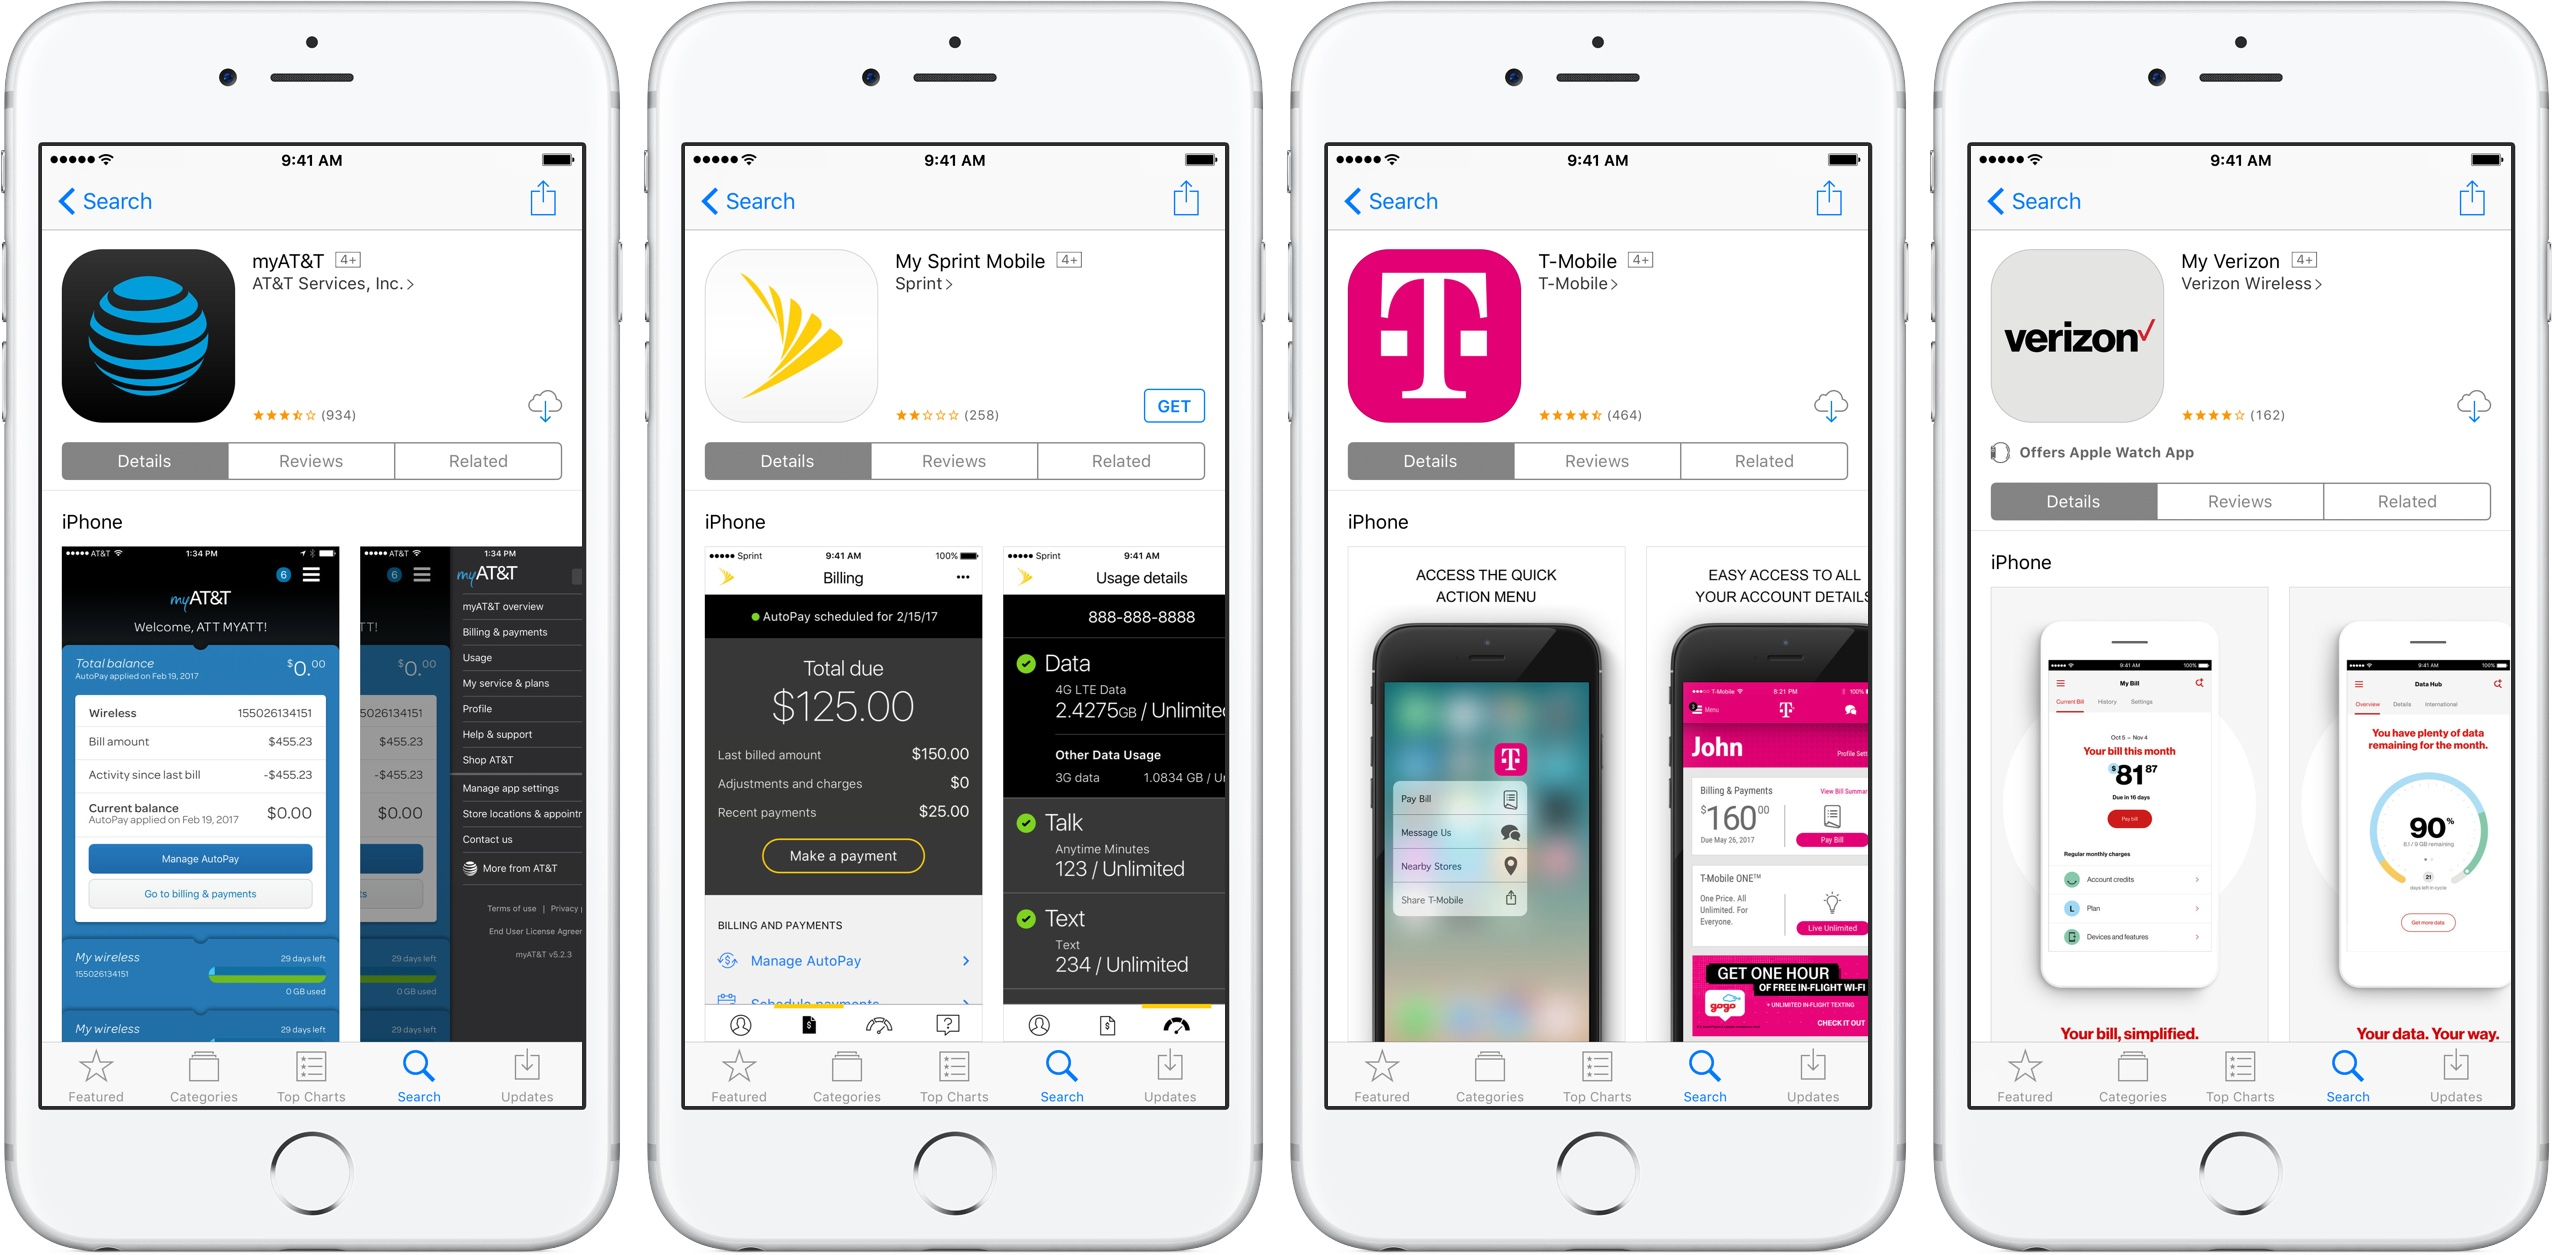 Image showing iOS apps for AT&T, Sprint, T-Mobile, and Verizon